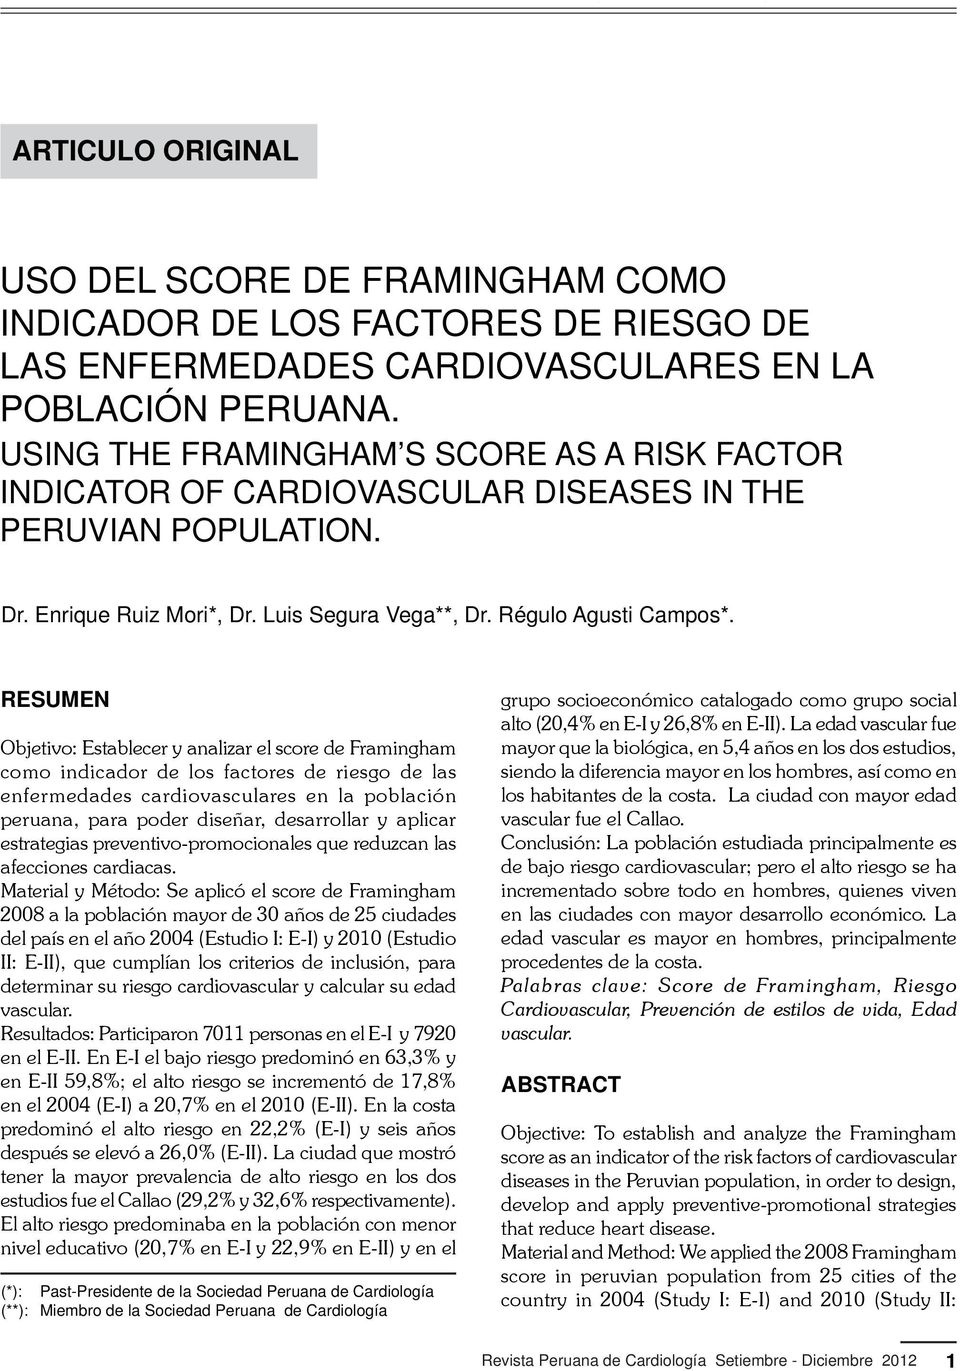 USING THE FRAMINGHAM S SCORE AS A RISK FACTOR INDICATOR OF CARDIOVASCULAR DISEASES IN THE PERUVIAN POPULATION. Dr. Enrique Ruiz Mori*, Dr. Luis Segura Vega**, Dr. Régulo Agusti Campos*.